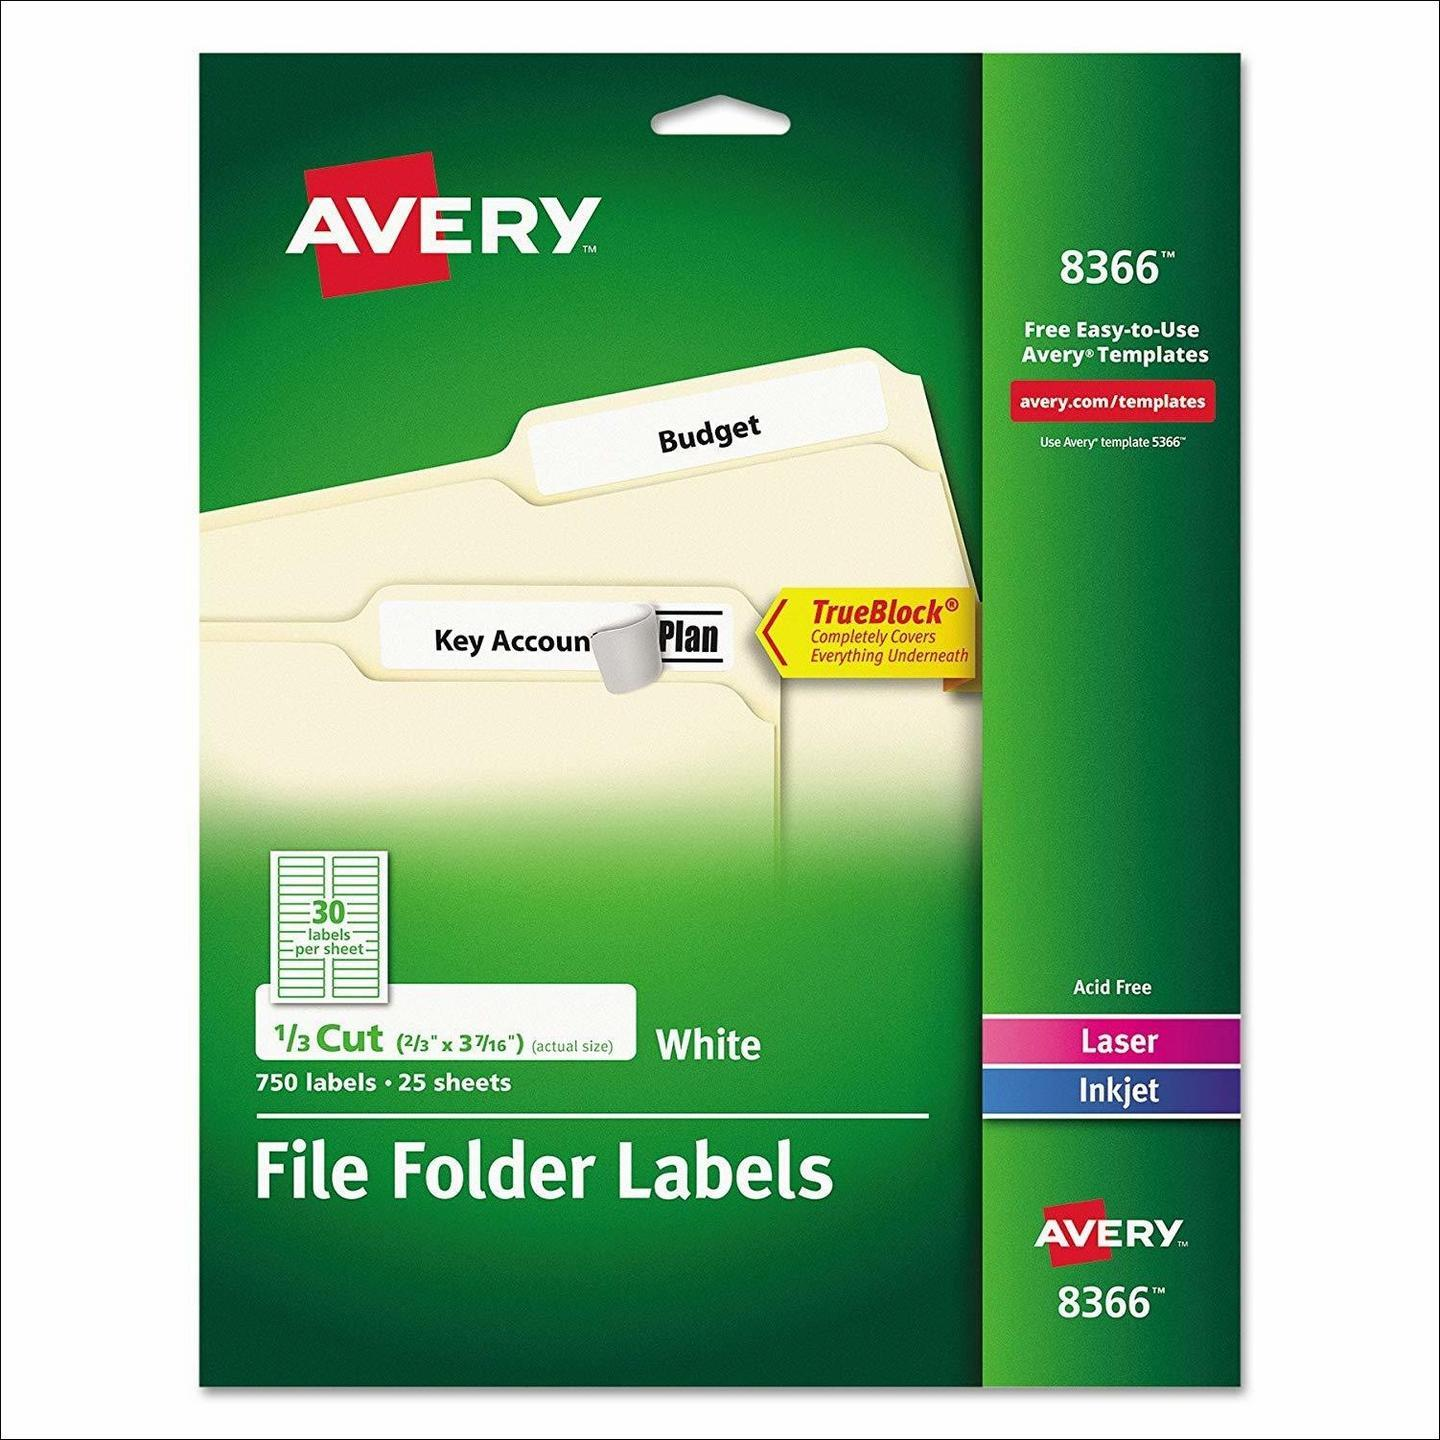 Avery File Folder Label Template 2180